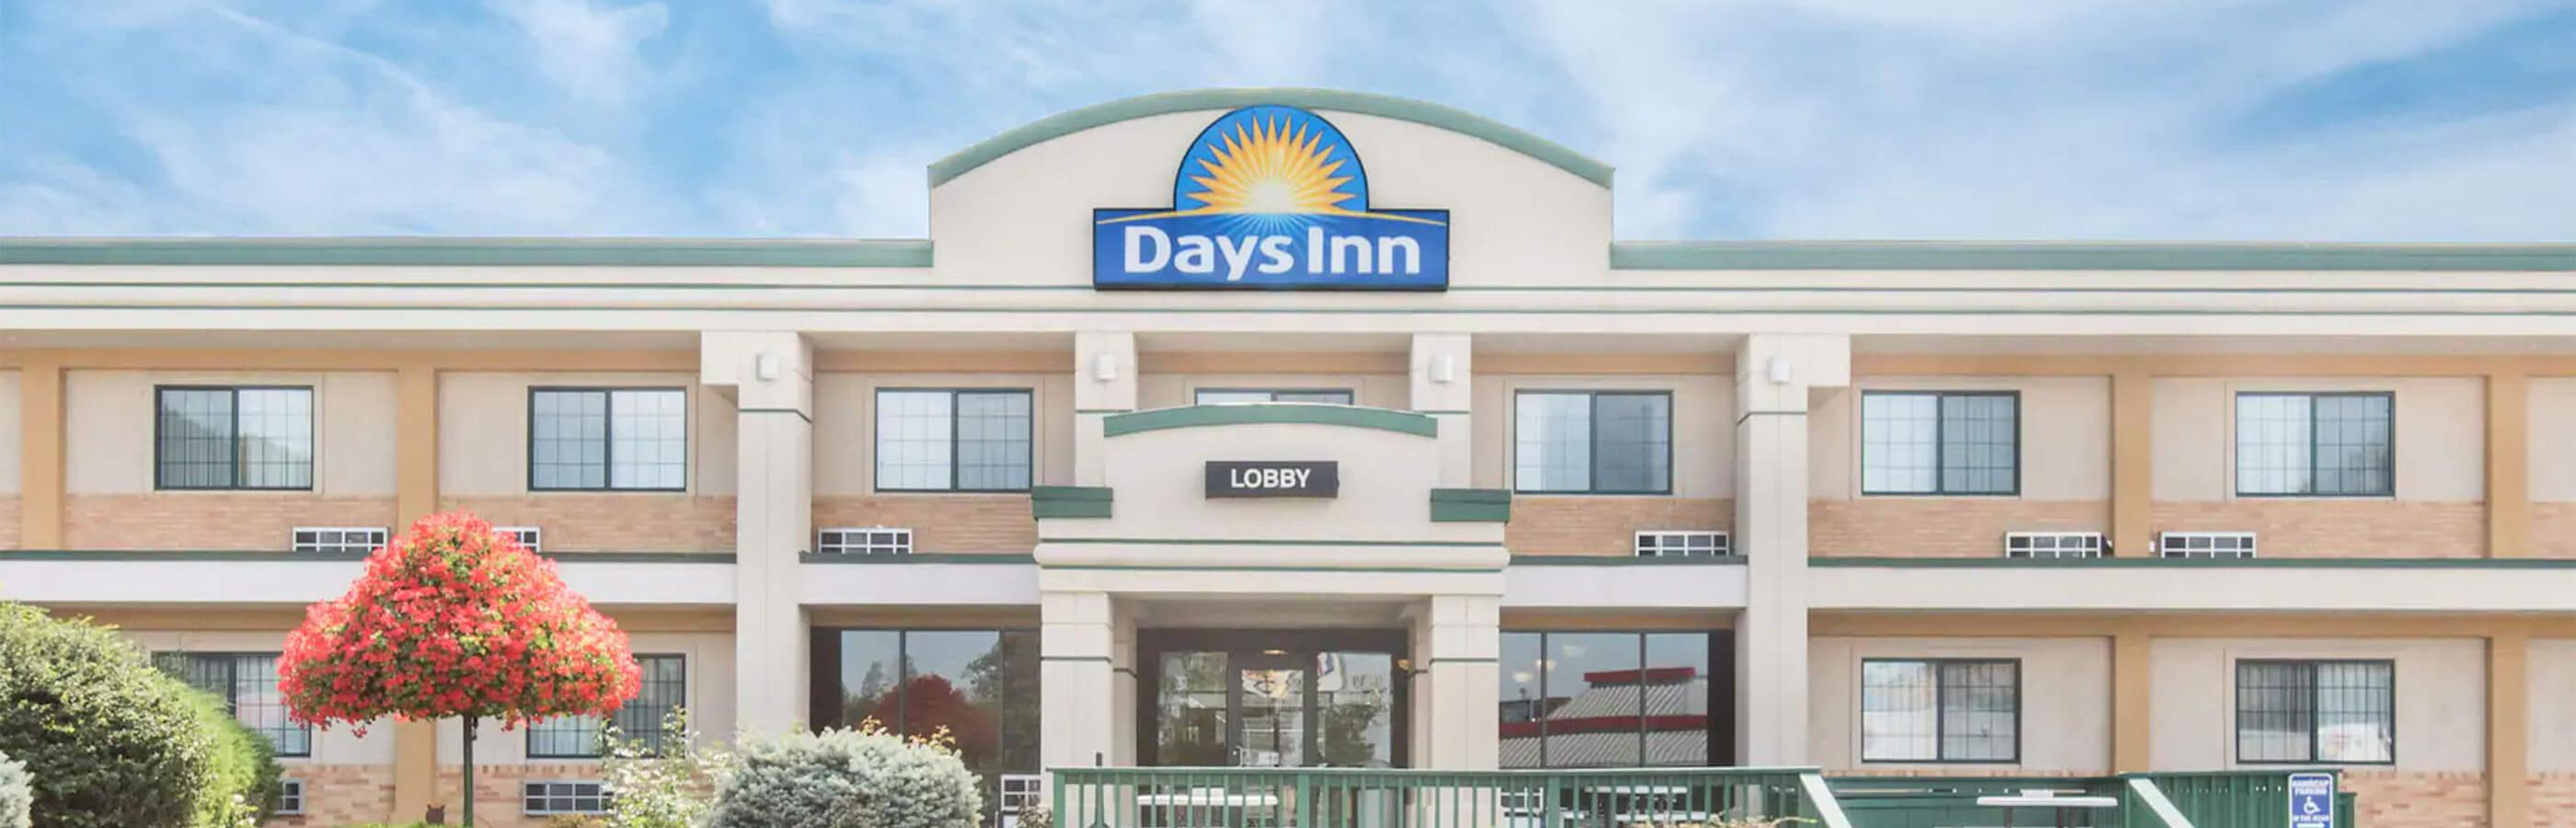 Days Inn West Rapid City South Dakota